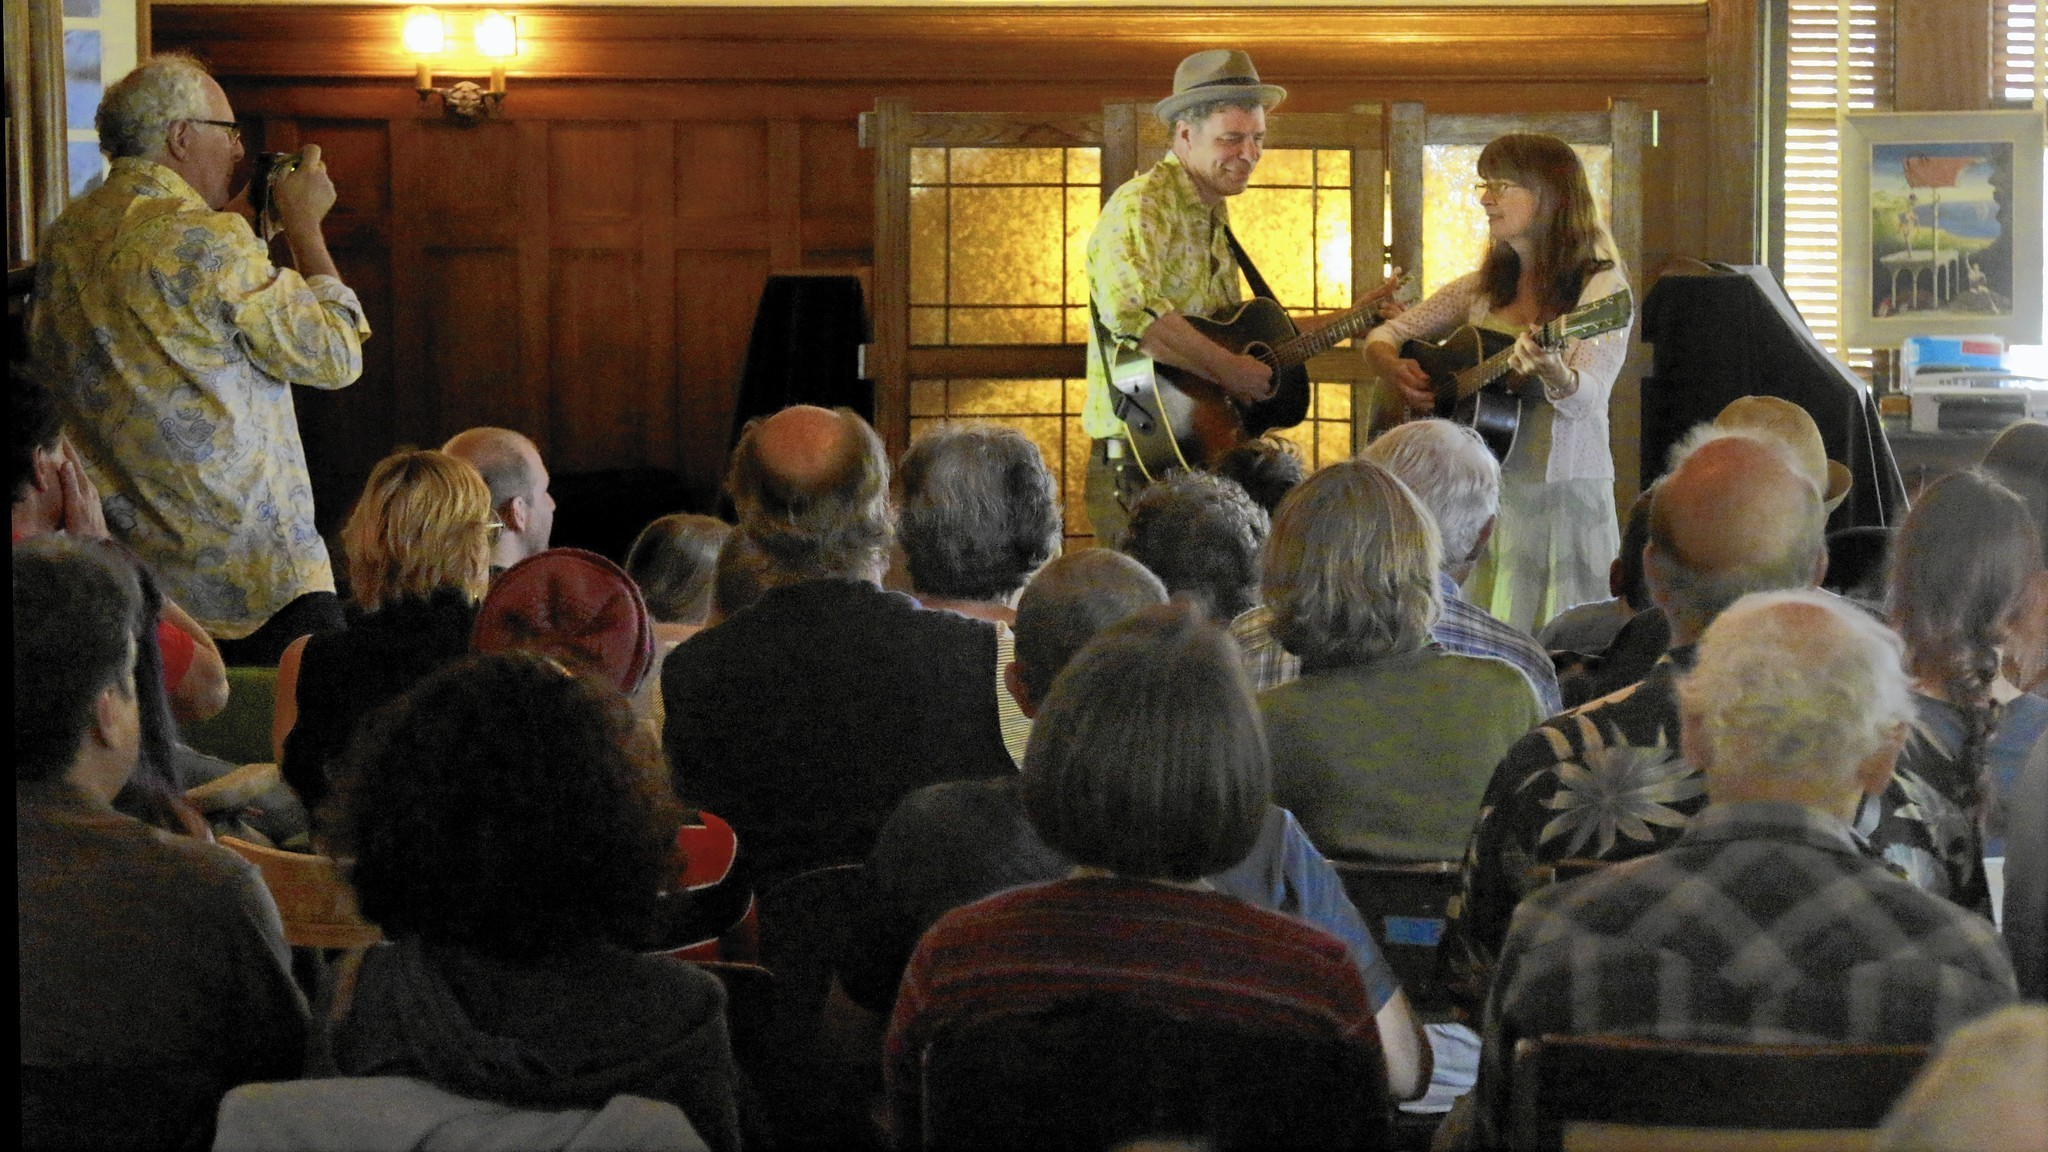 Old-time music at a ranch? It's an American idyll